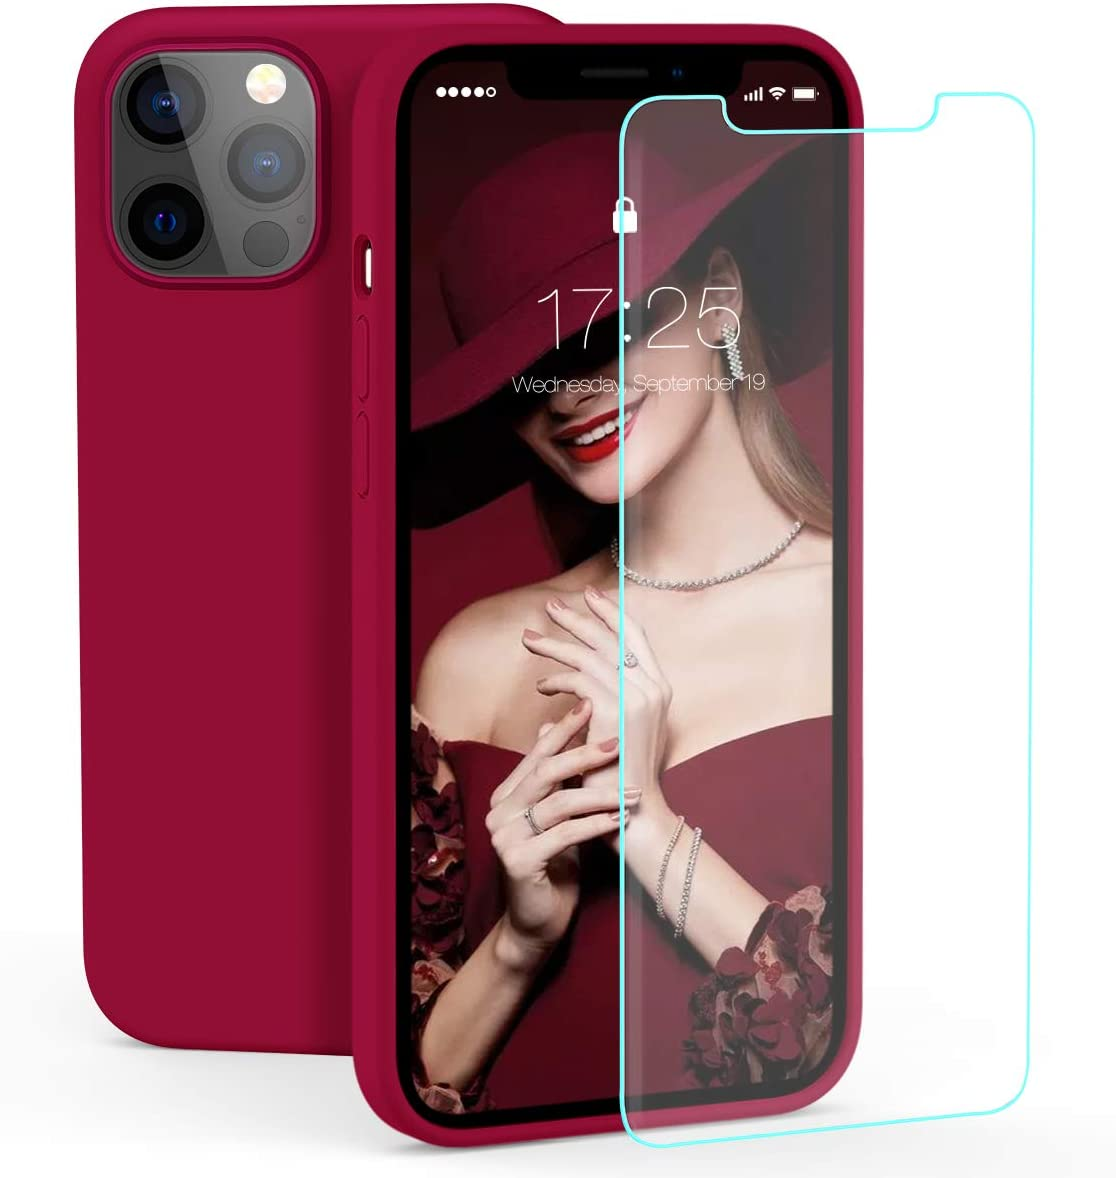 zelaxy Case Compatible with iPhone 12 / iPhone 12 Pro, Liquid Silicone Rubber Gel Case with Screen Protector(Wine Red)